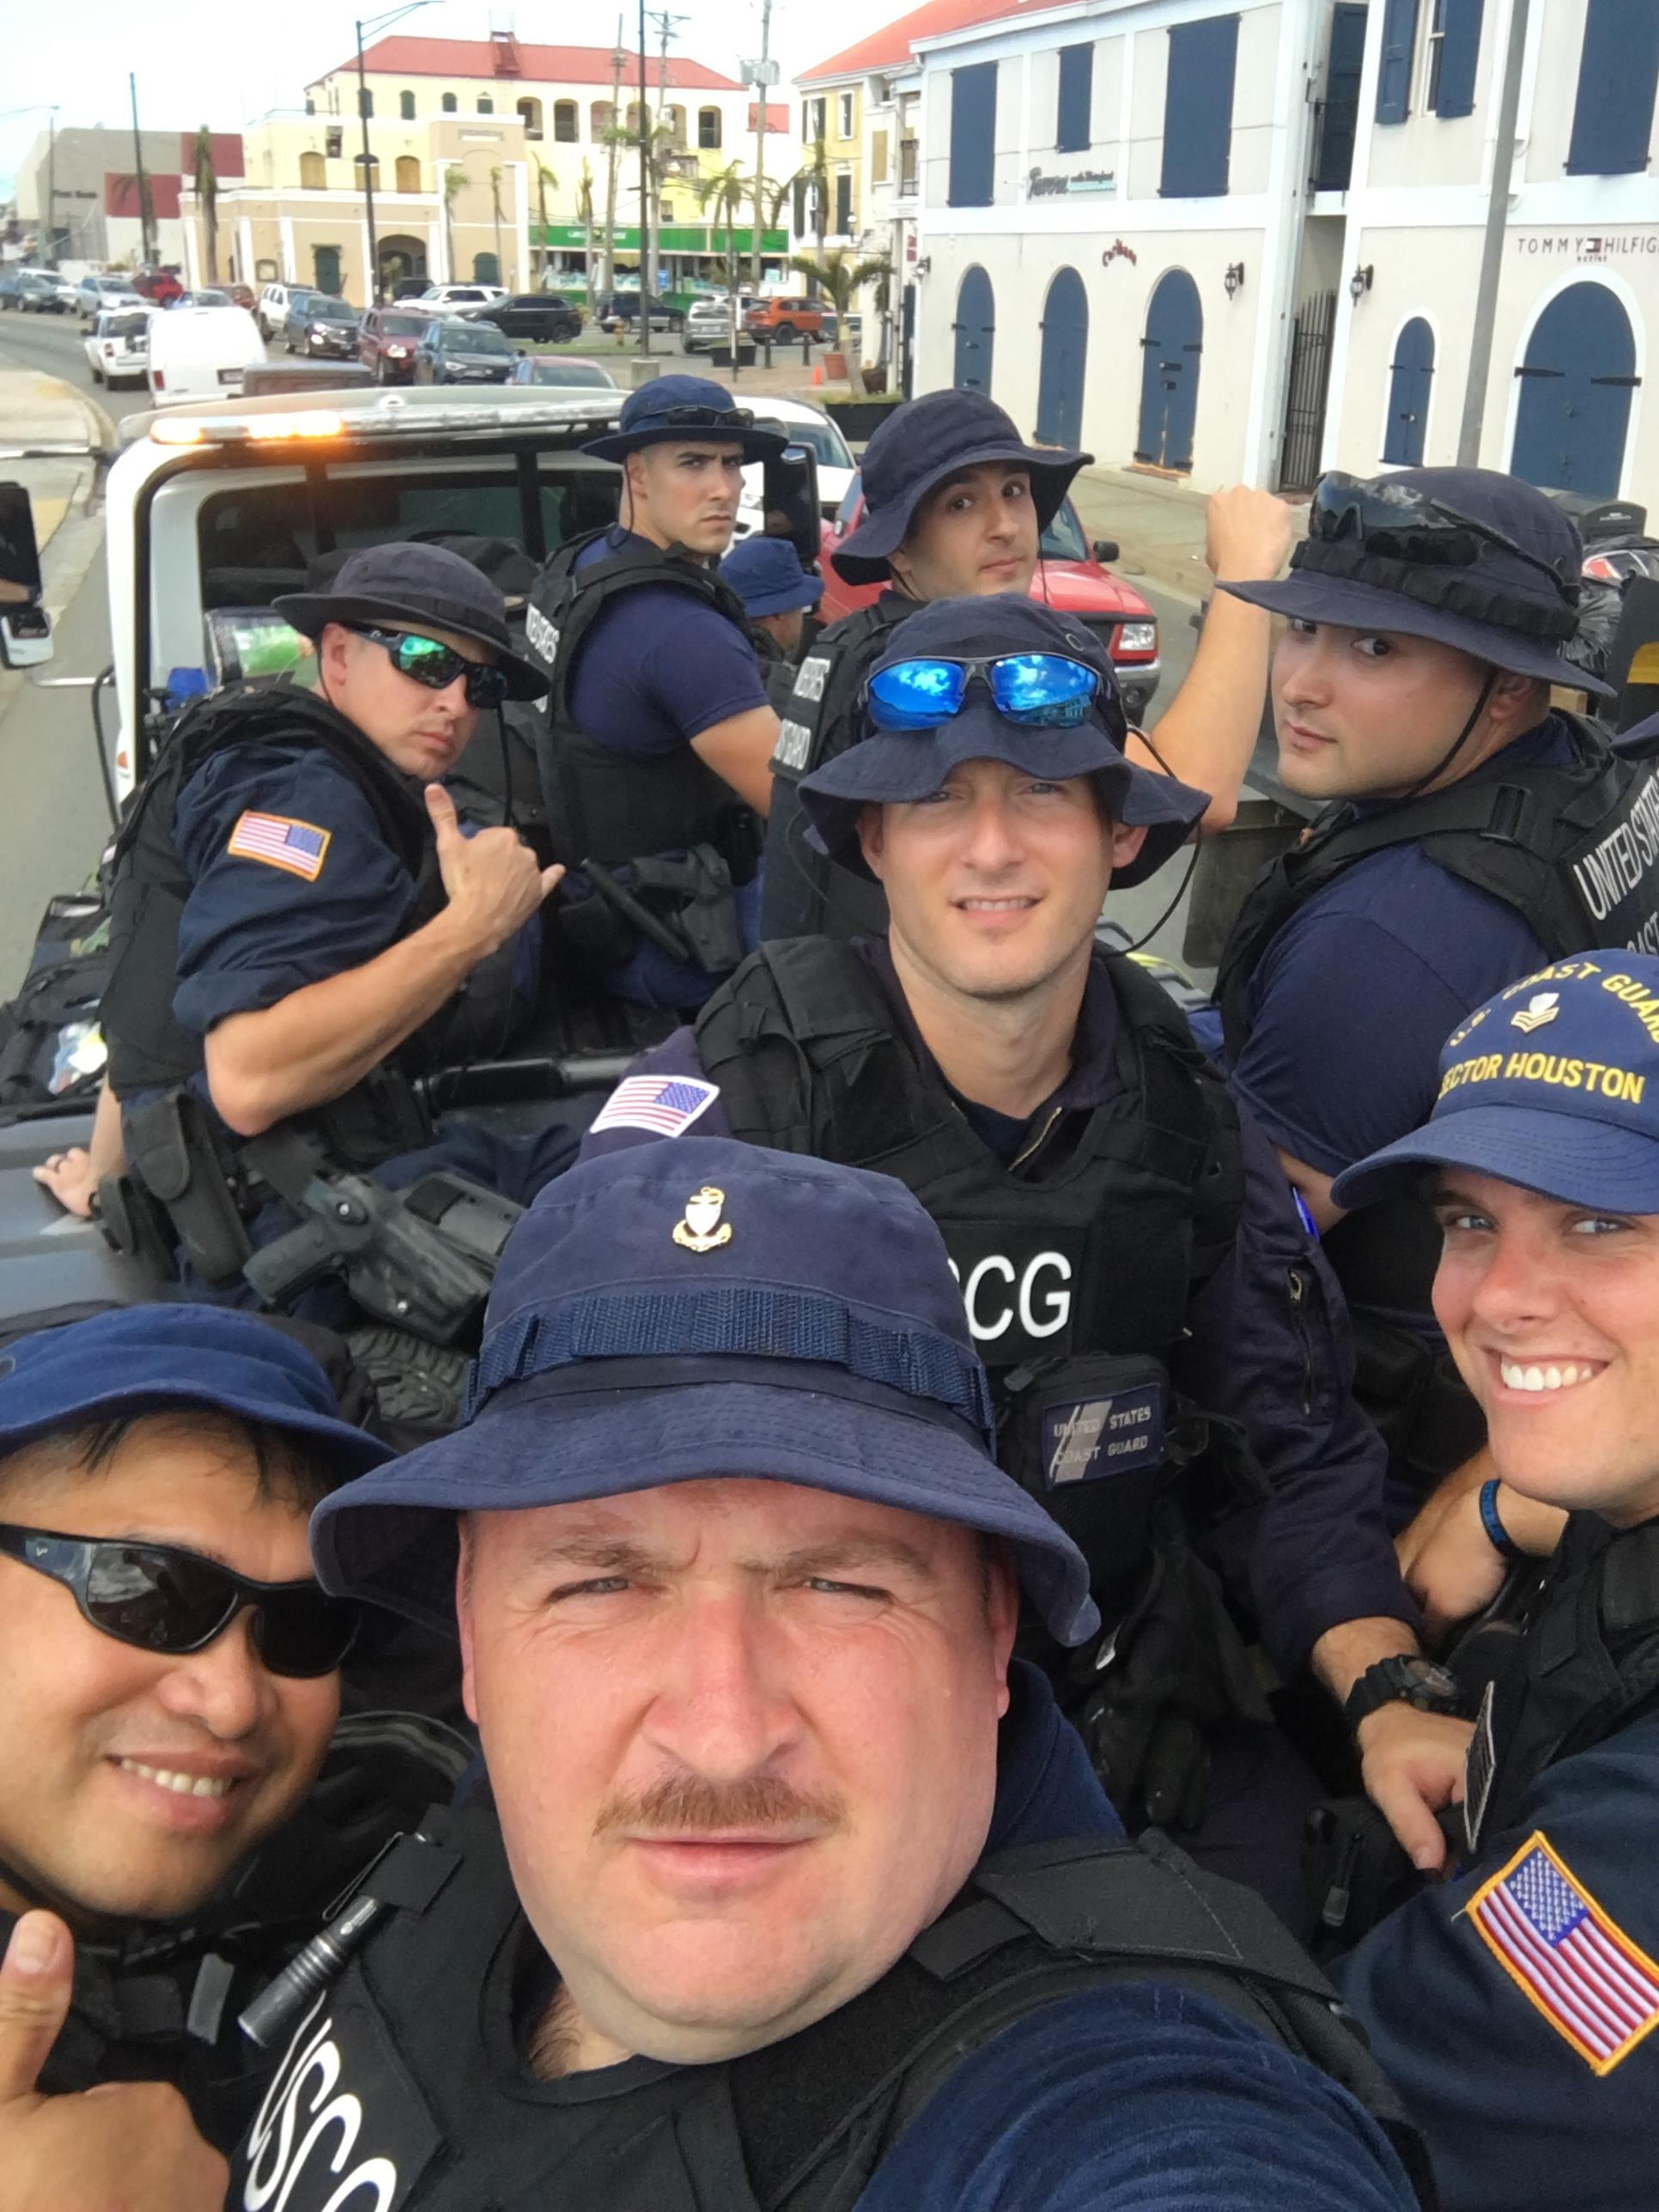 Chief Petty officer Michael Bazzrea and crew selfie